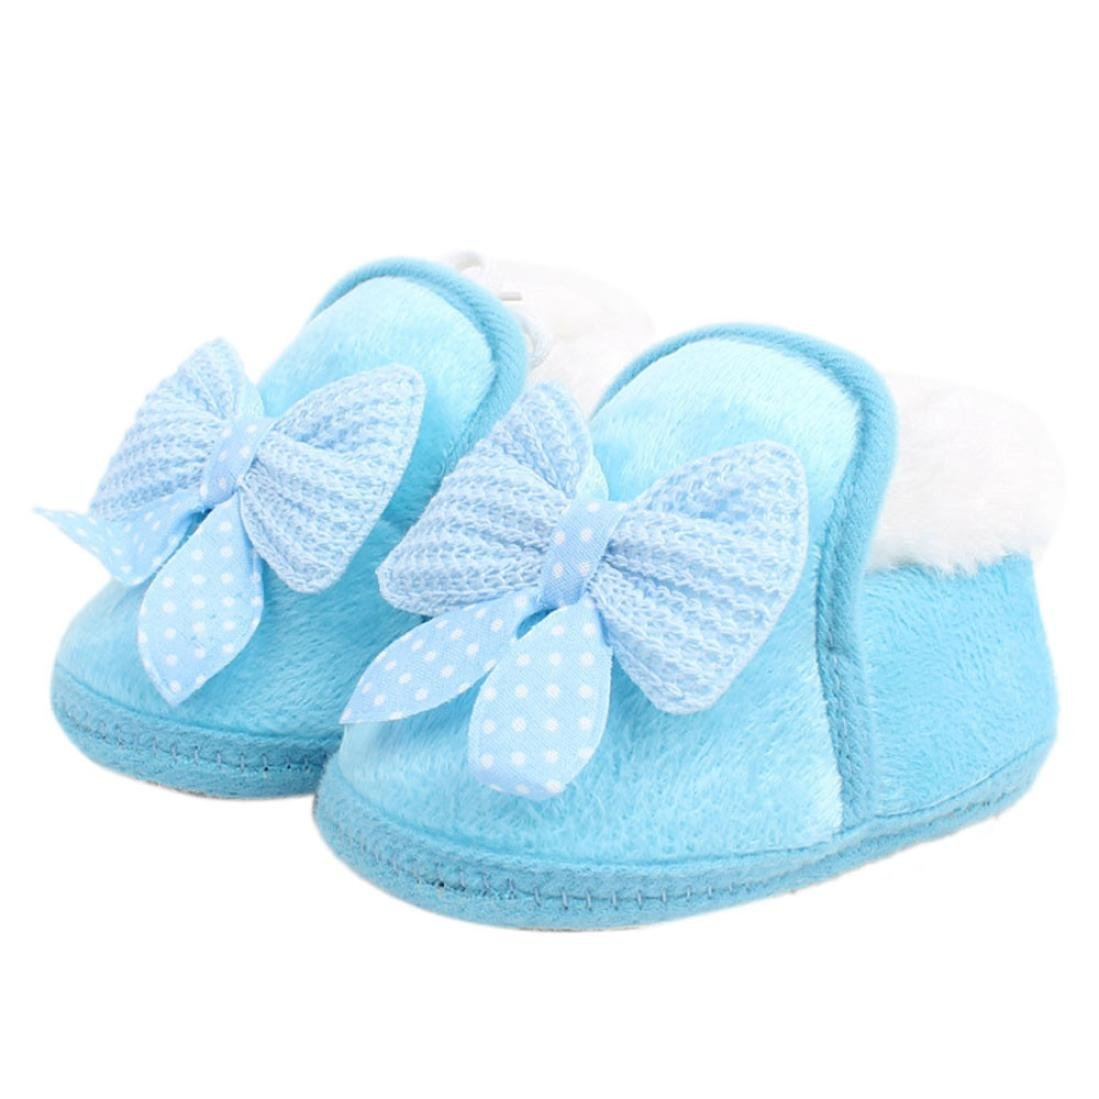 14 CM, Blue Bestpriceam/® Baby Boy Girl Bow-knot Shoes Toddler Winter Warm Boots Brow